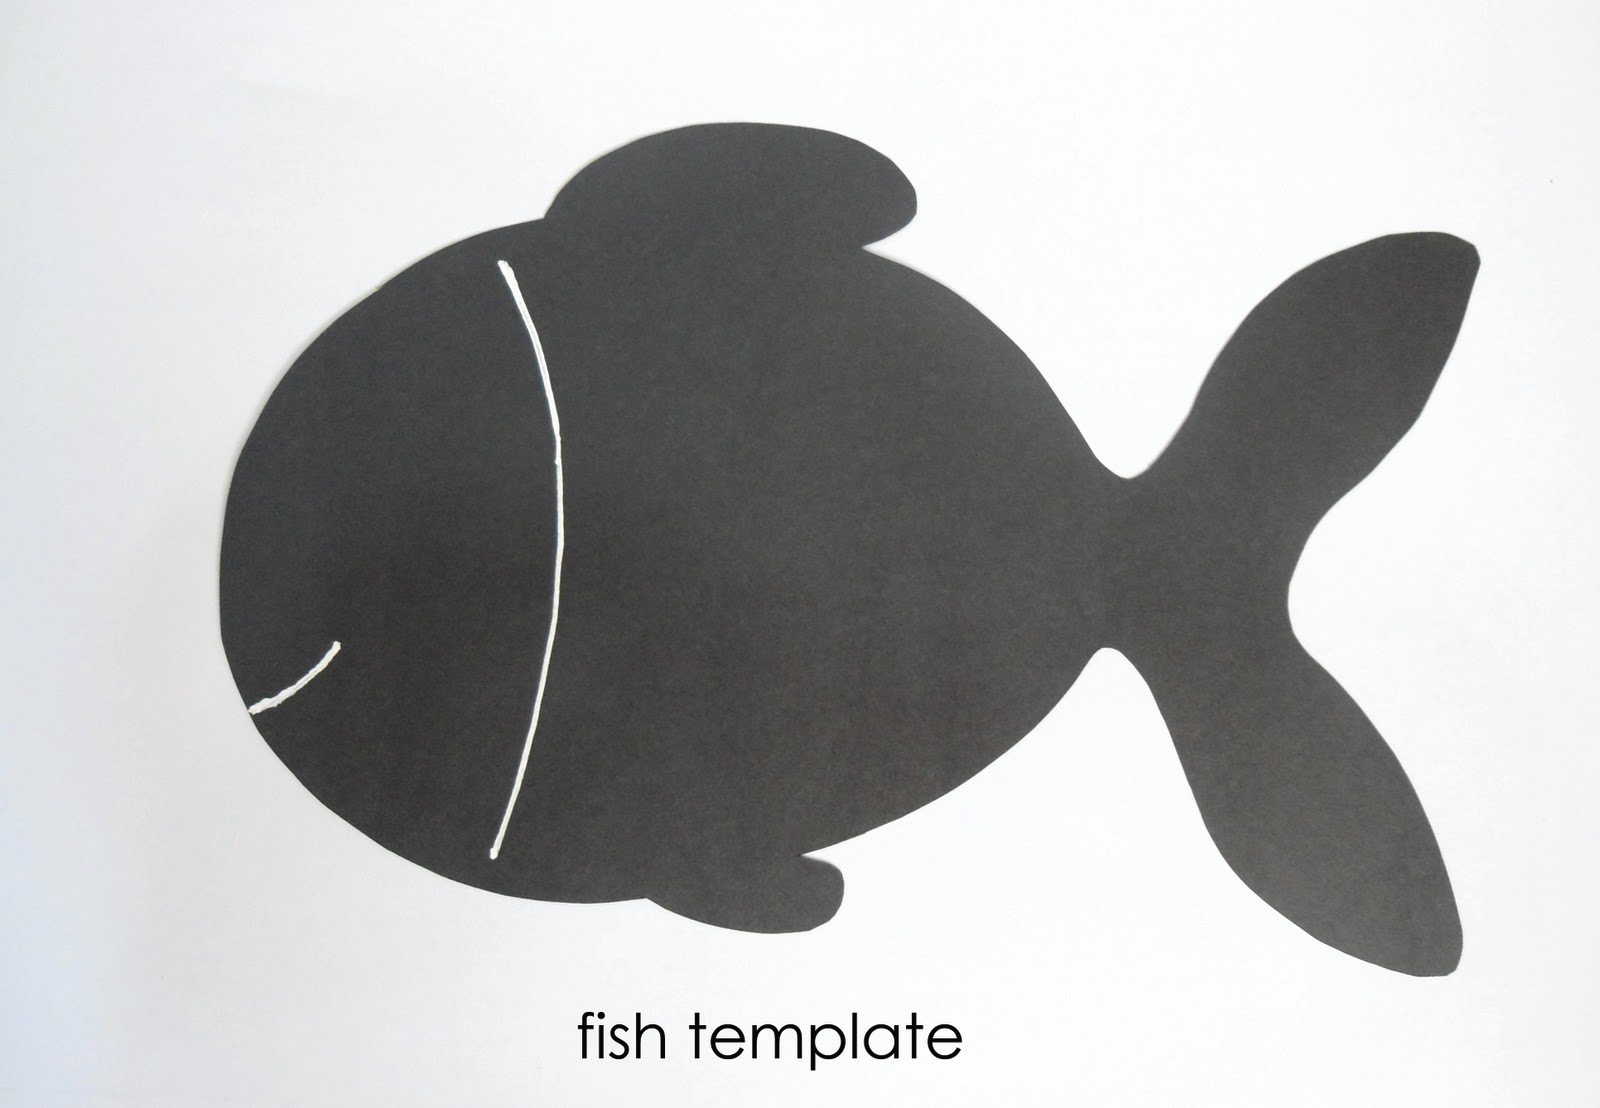 fish template for preschool